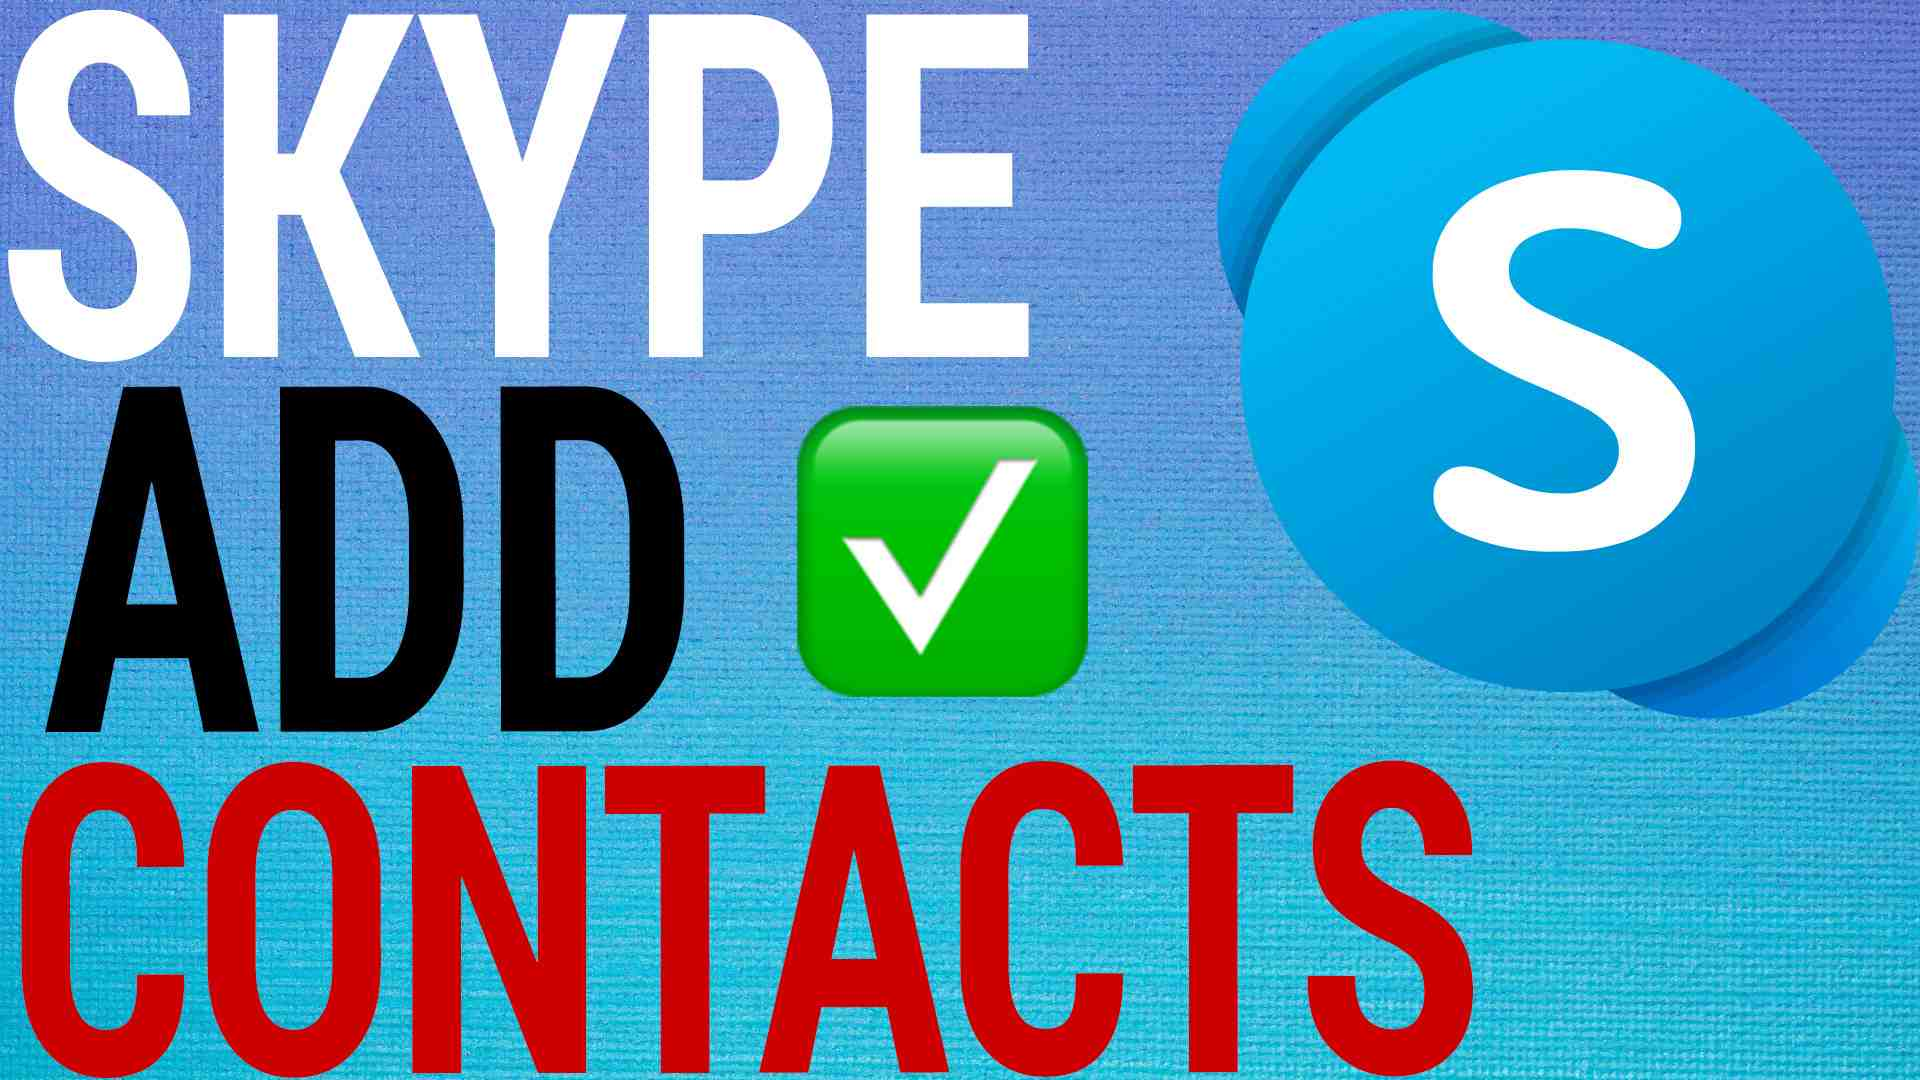 How To Add Contacts On Skype